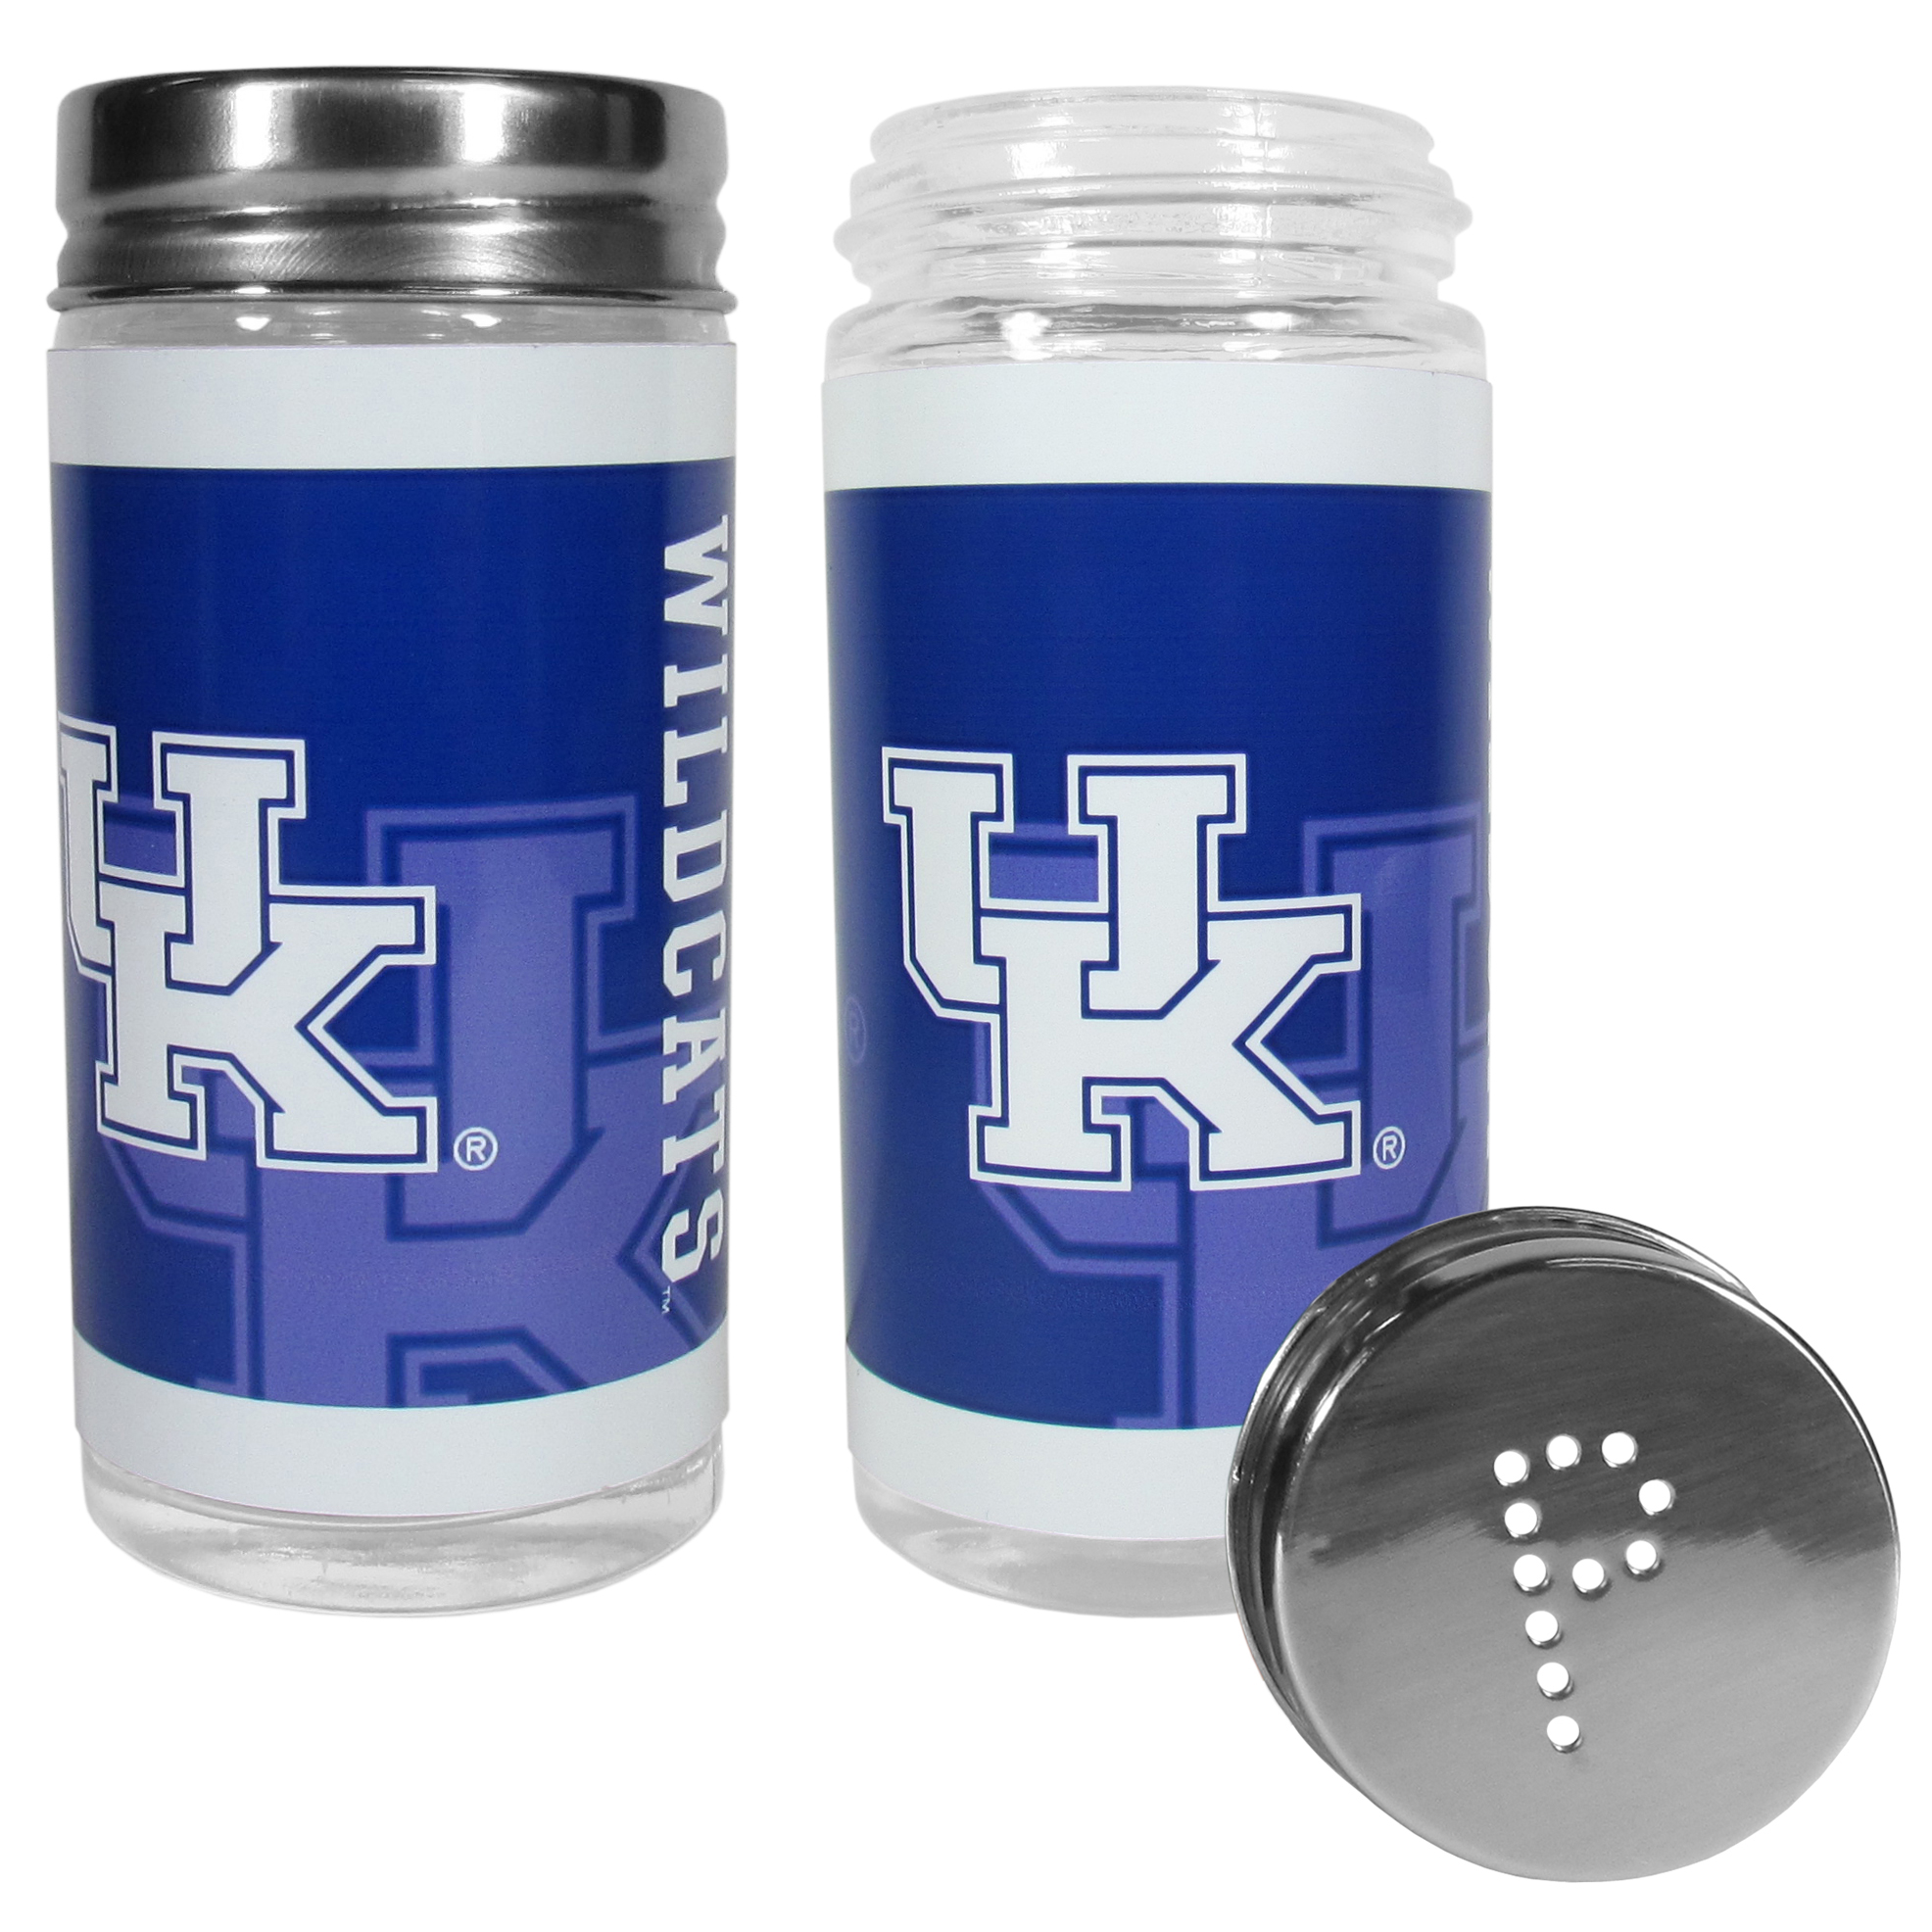 Kentucky Wildcats Tailgater Salt & Pepper Shakers - No tailgate party is complete without your Kentucky Wildcats salt & pepper shakers featuring bright team graphics. The glass shakers are 3.75 inches tall and the screw top lids have holes that spell out P and S. These team shakers are a great grill accessory whether you are barbecuing on the patio, picnicing or having a game day party.